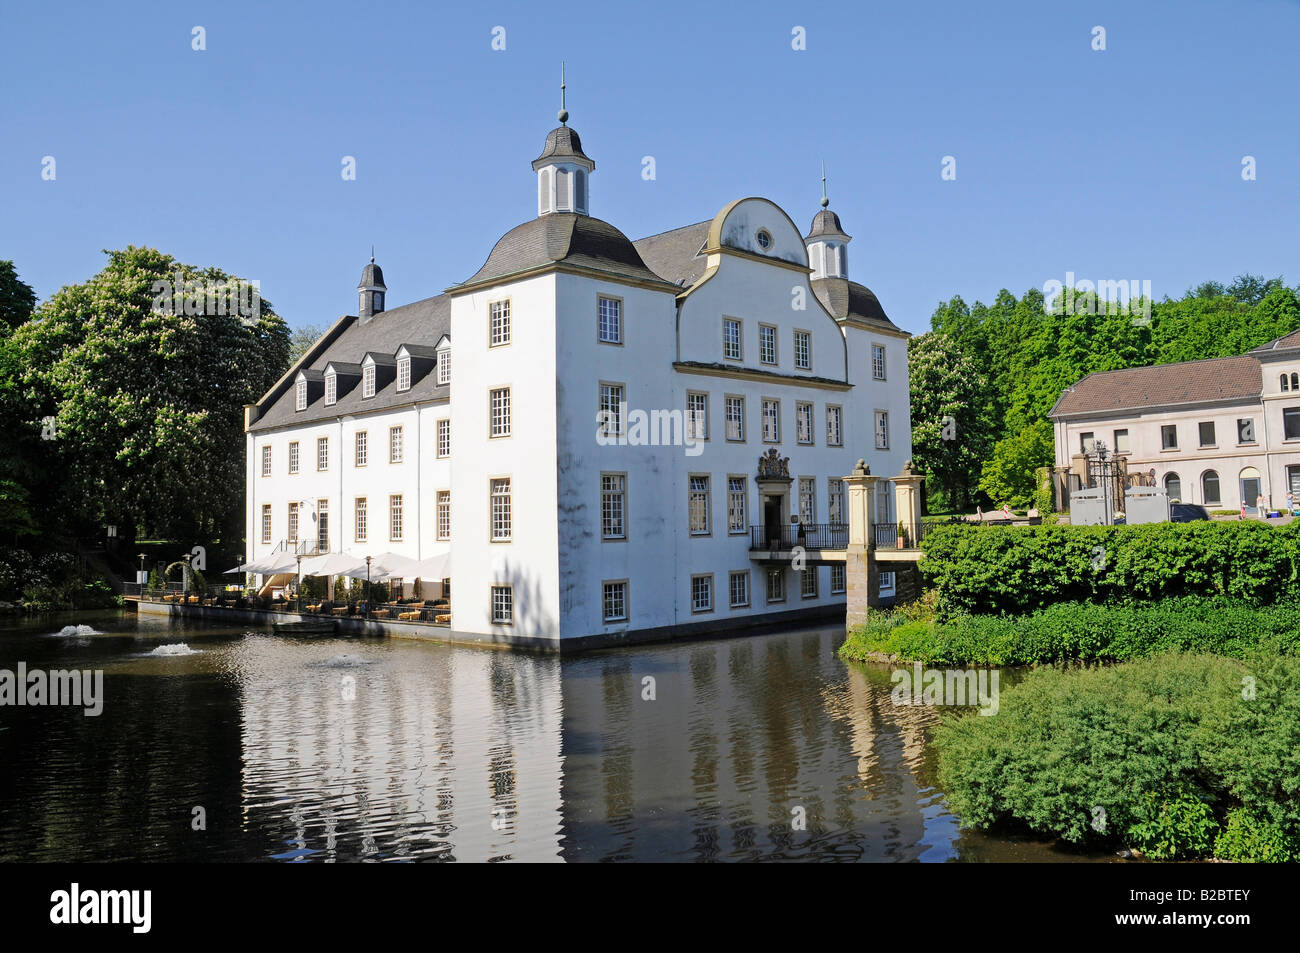 Borbeck Water Castle, cultural centre, museum, Essen, North Rhine-Westphalia, Germany, Europe - Stock Image